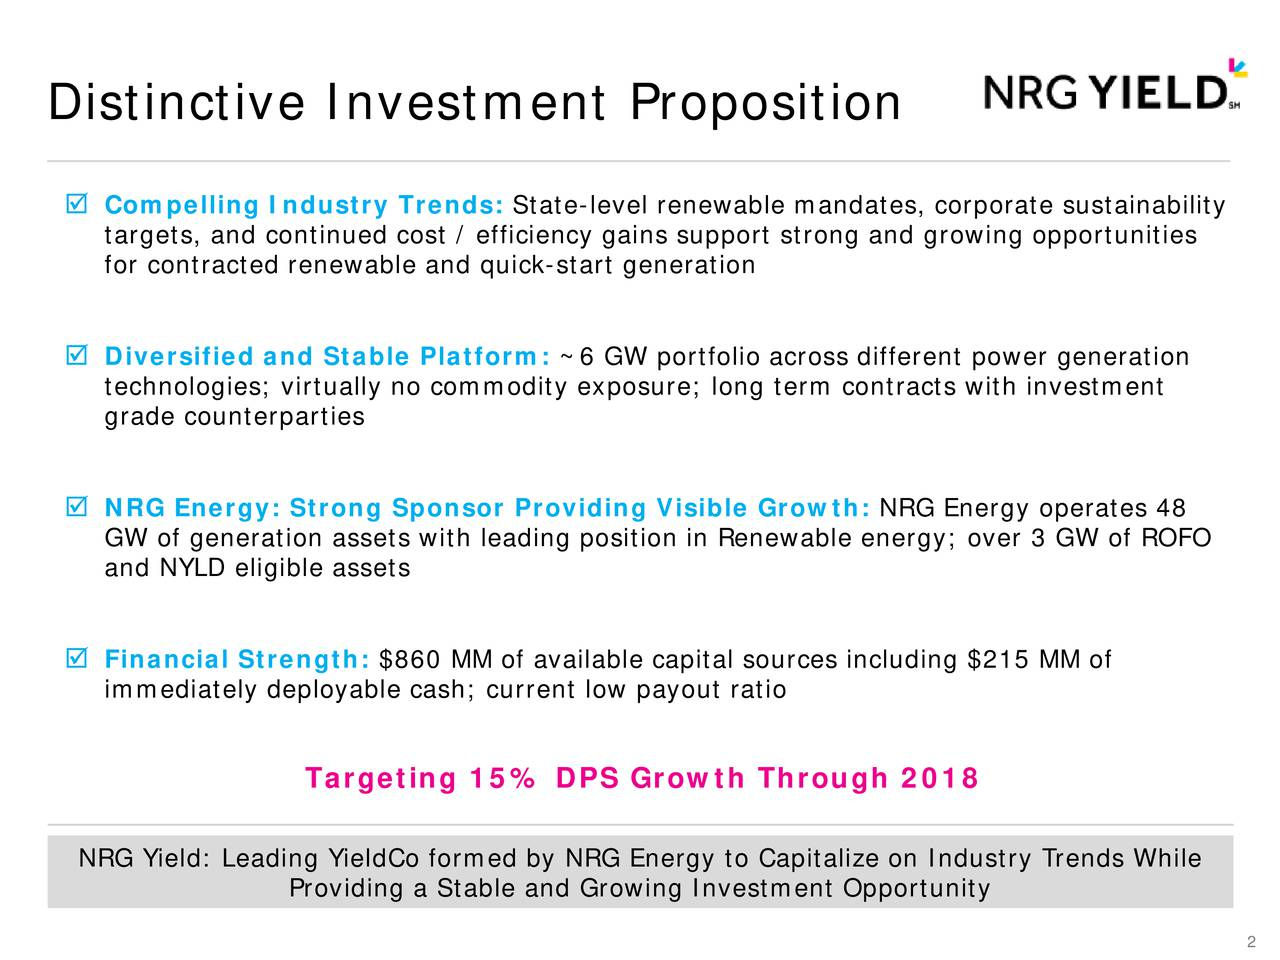 Compelling Industry Trends: State-level renewable mandates, corporate sustainability targets, and continued cost / efficiency gains support strong and growing opportunities for contracted renewable and quick-start generation Diversified and Stable Platform: ~6 GW portfolio across different power generation technologies; virtually no commodity exposure; long term contracts with investment grade counterparties NRG Energy: Strong Sponsor Providing Visible Growth:NRG Energy operates 48 GW of generation assets with leading position in Renewable energy; over 3 GW of ROFO and NYLD eligible assets Financial Strength: $860 MM of available capital sources including $215 MM of immediately deployable cash; current low payout ratio Targeting 15% DPS Growth Through 2018 NRG Yield: Leading YieldCo formed by NRG Energy to Capitalize on Industry Trends While Providing a Stable and Growing Investment Opportunity